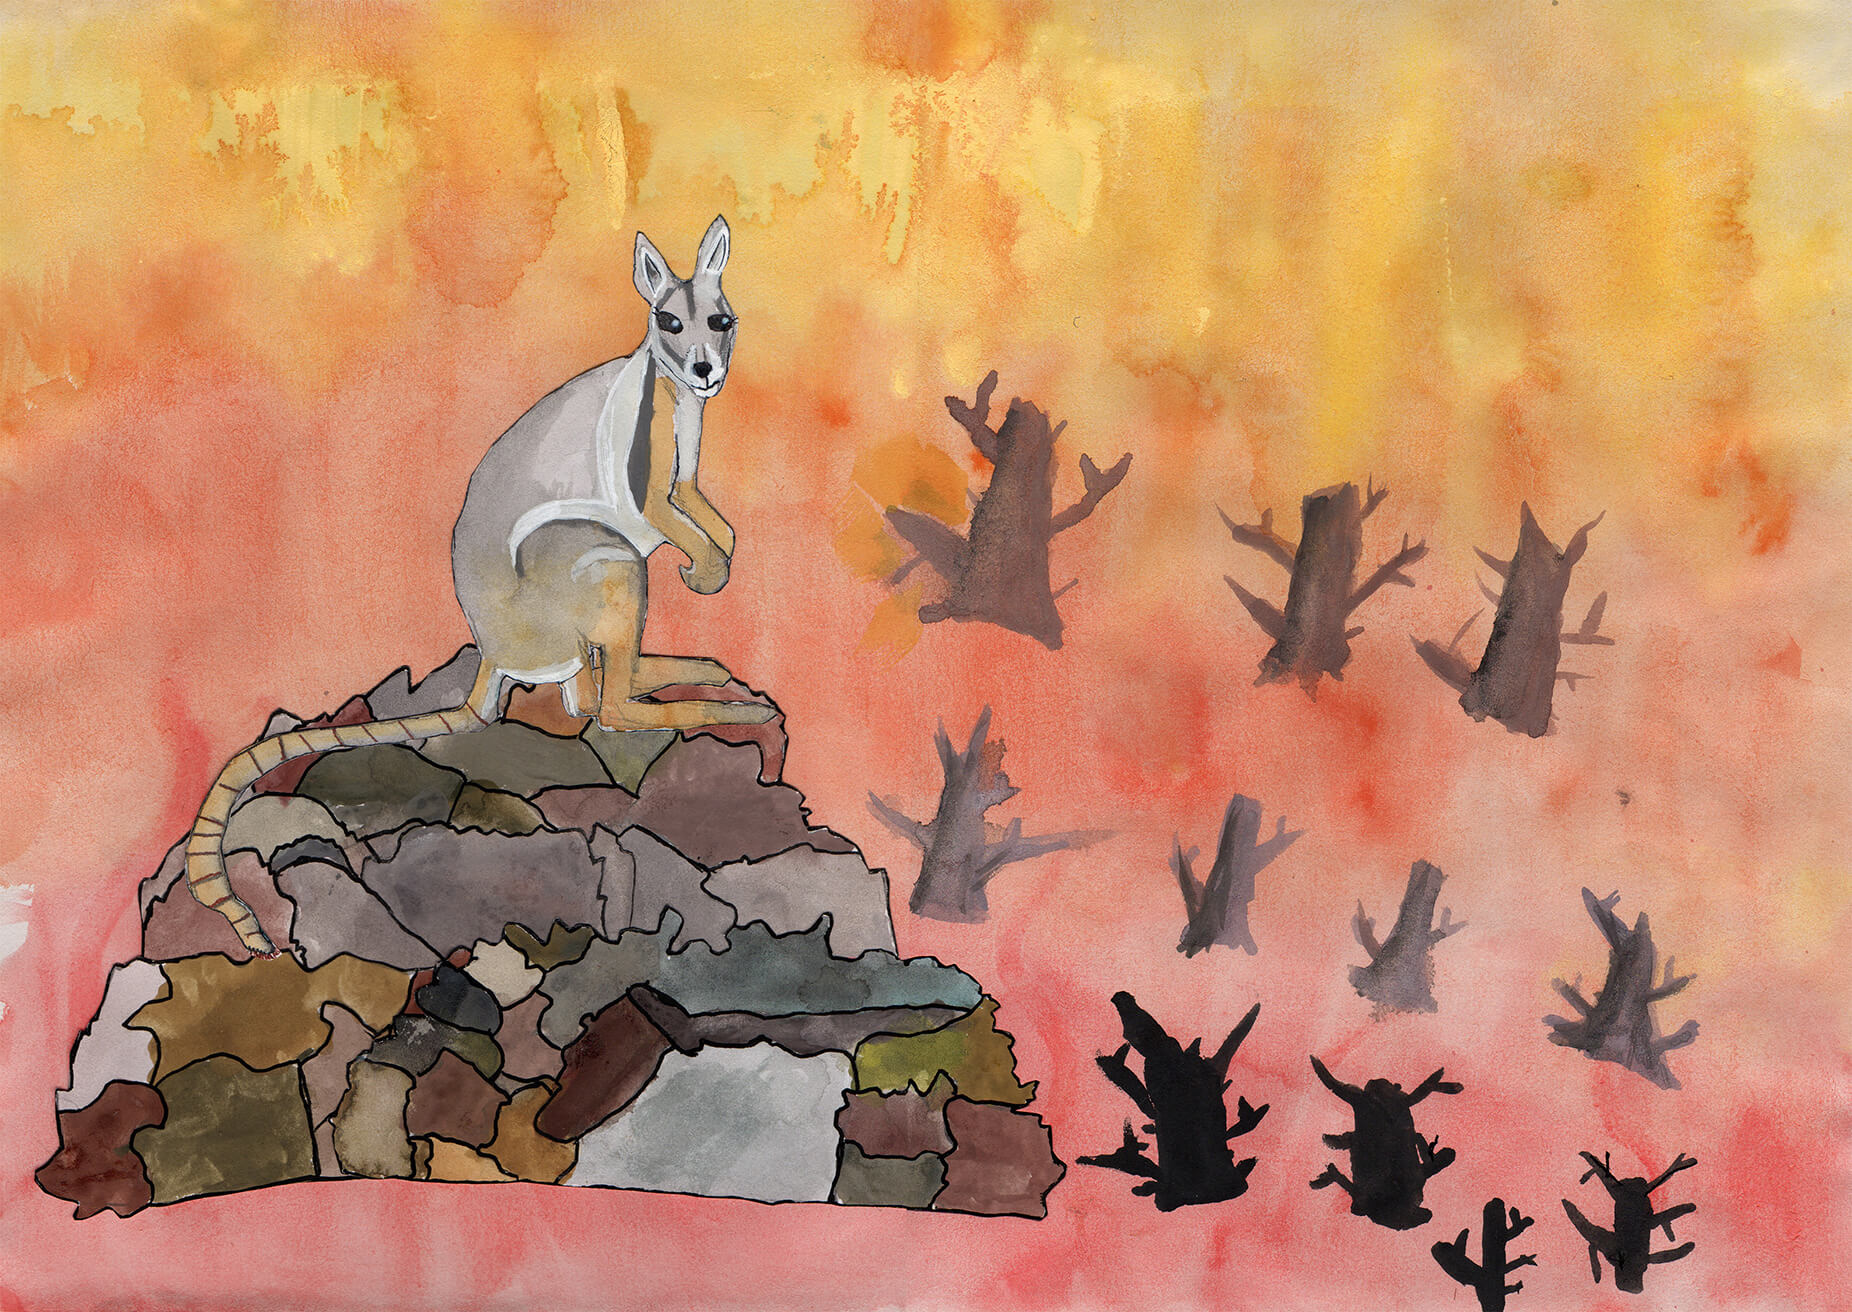 Yellow-footed rock wallaby by Lola, age 7